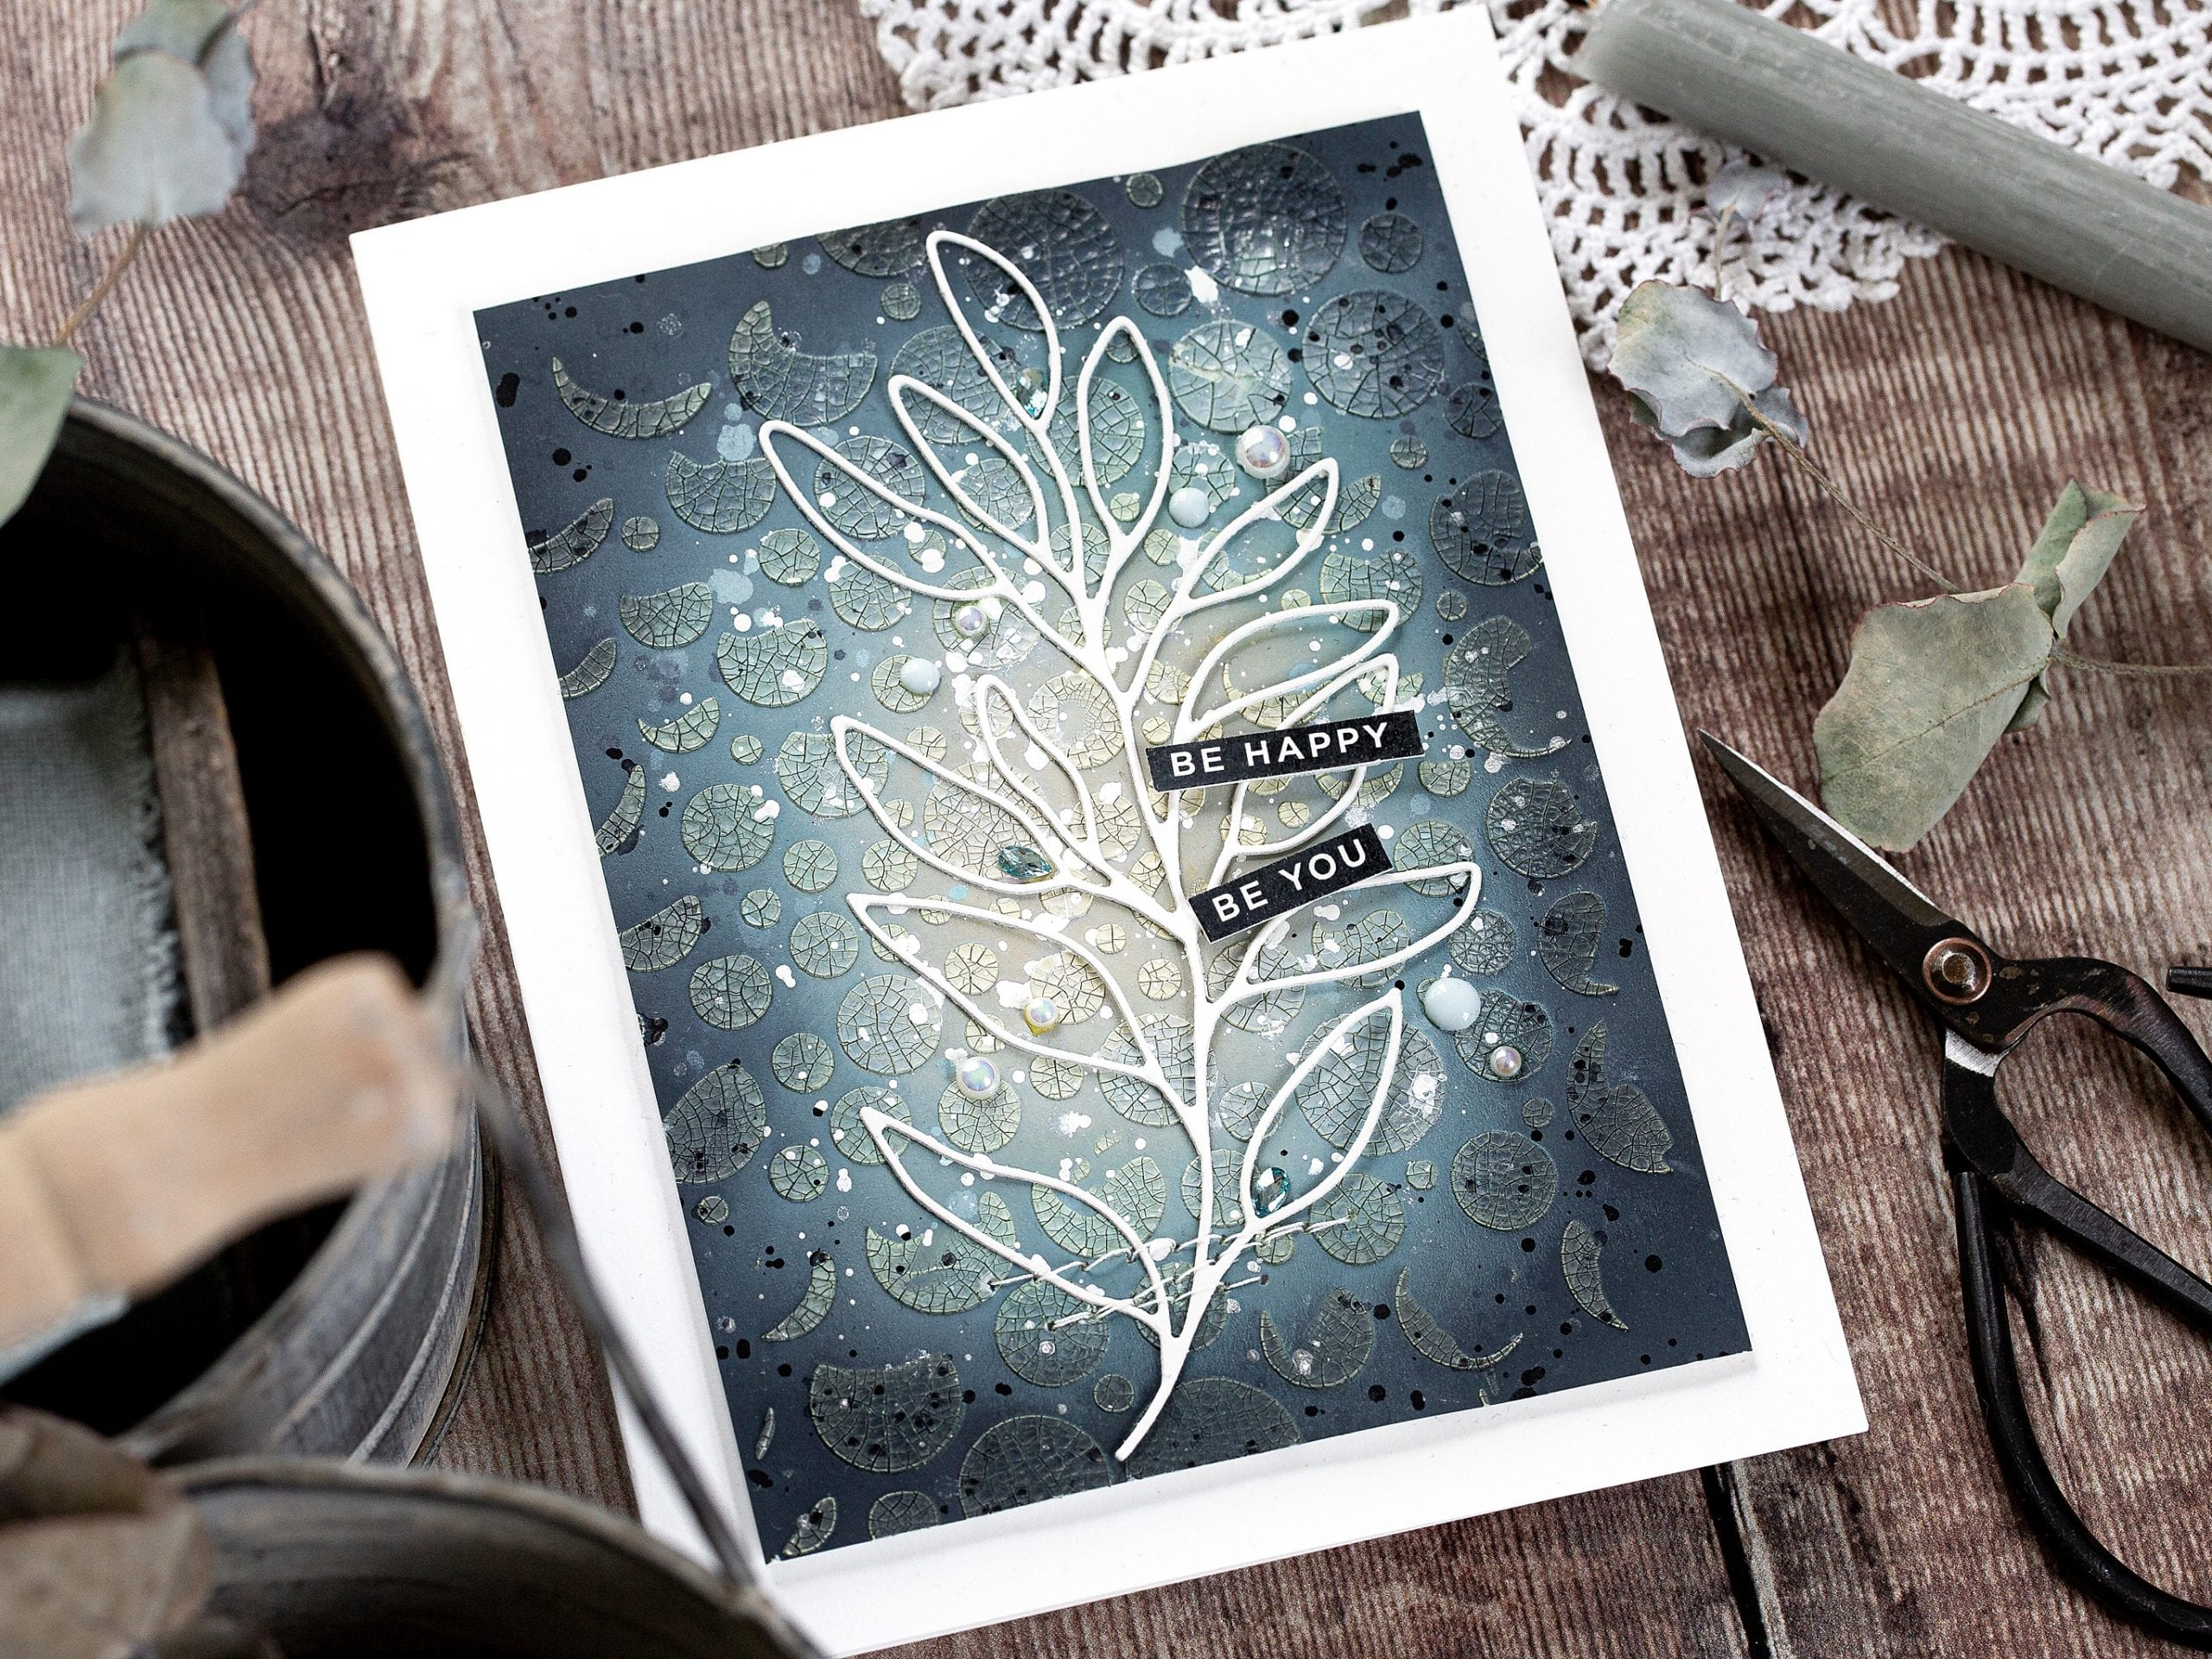 Tone on texture tutorial, handmade card by Debby Hughes using Simon Says Stamp and Tim Holtz products #crackle #texture